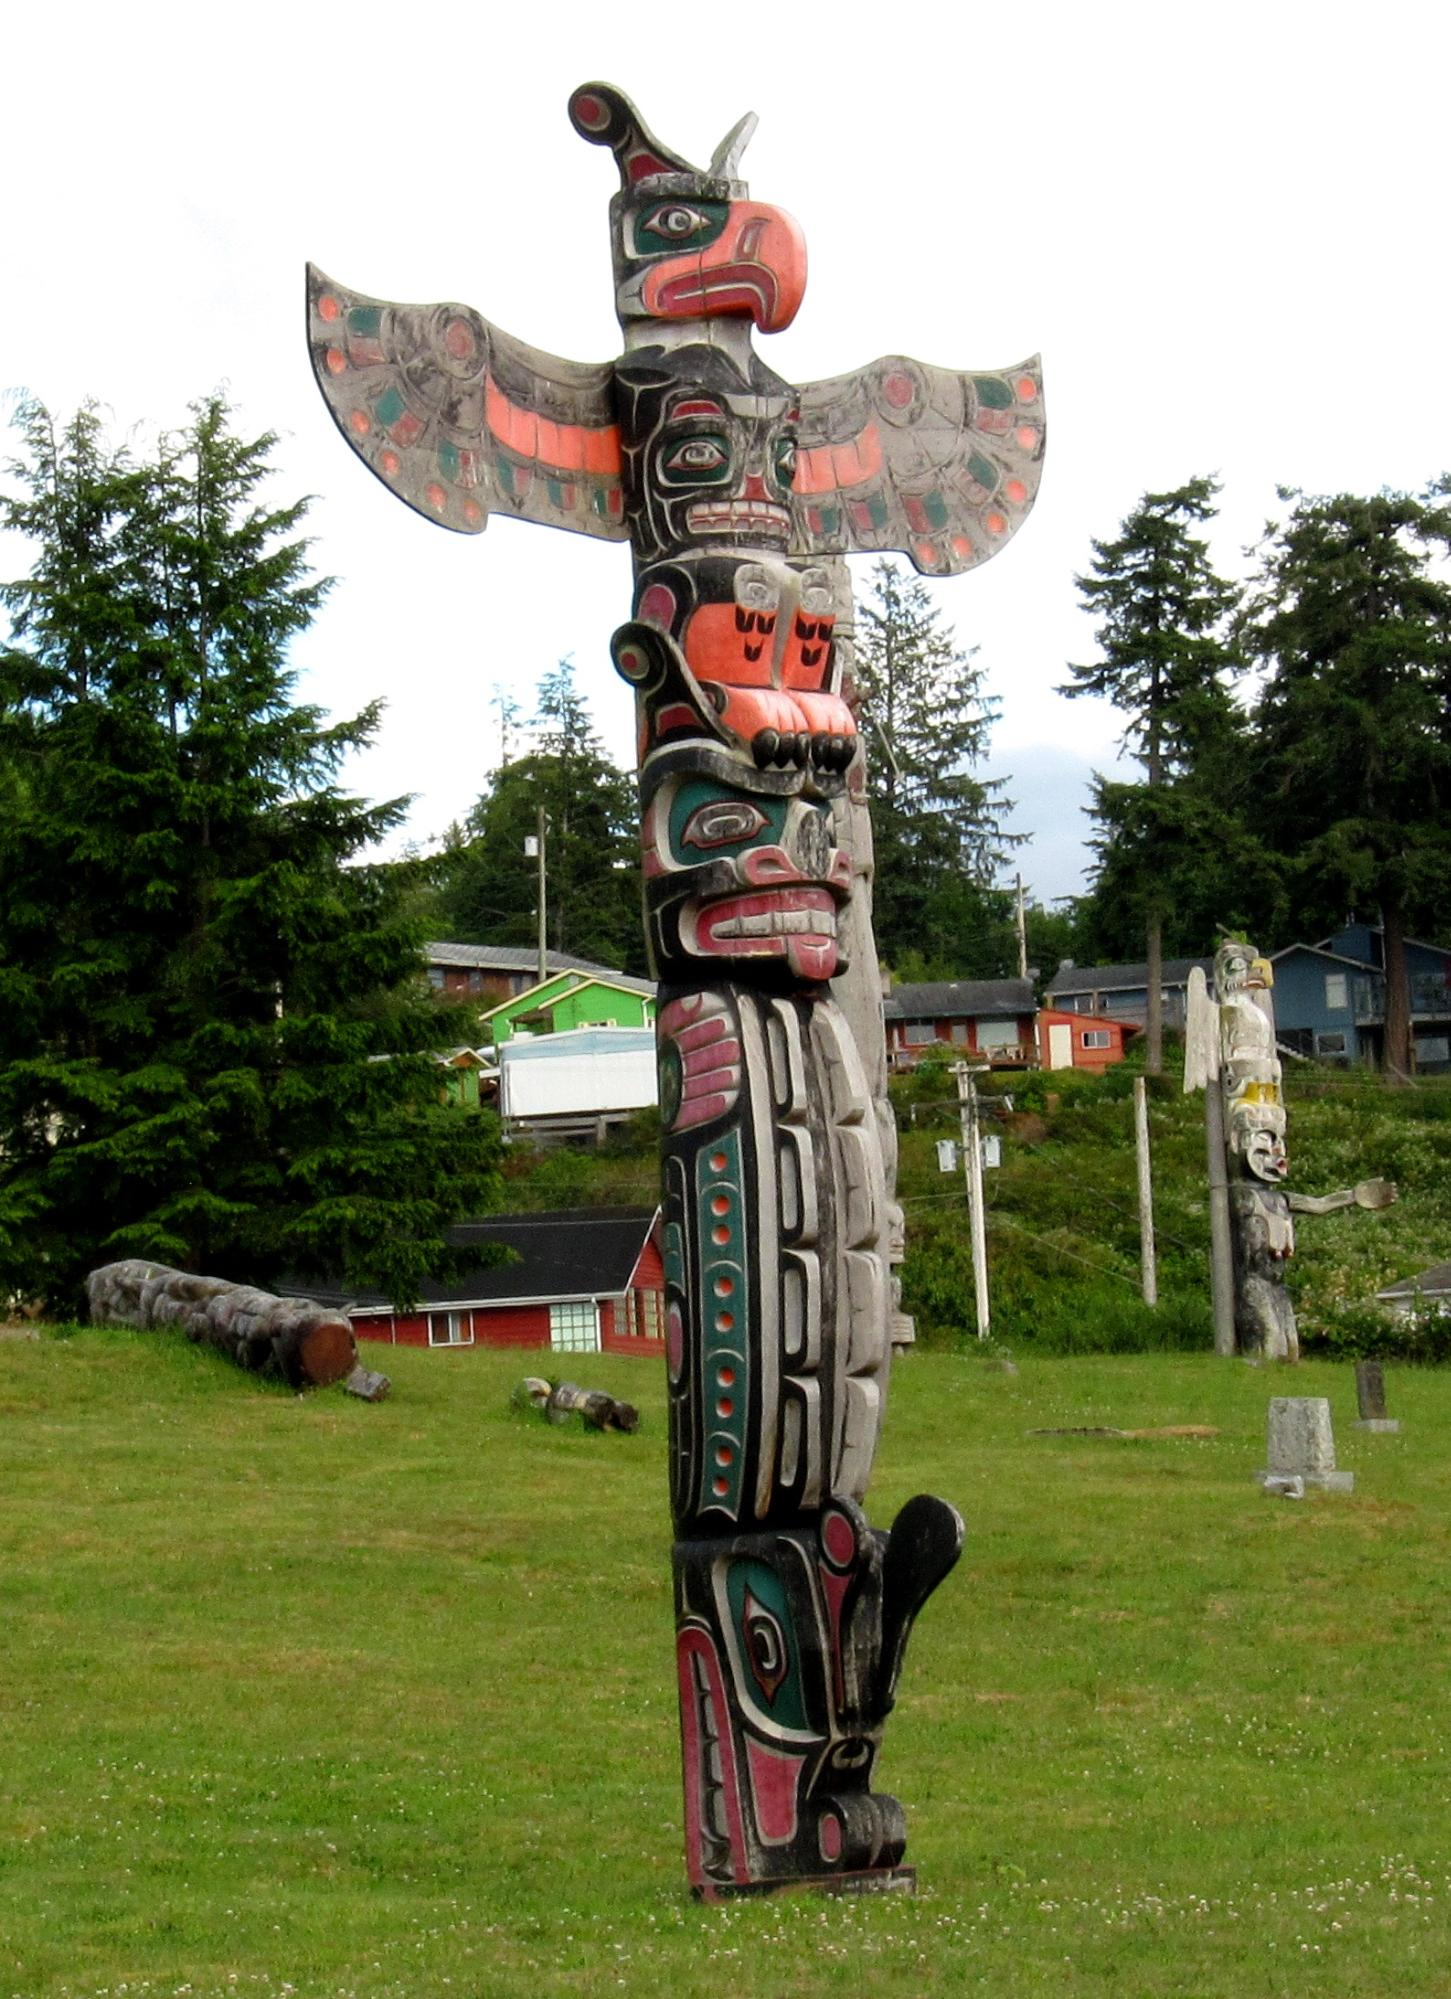 A colourful totem pole erected on a lush green lawn.